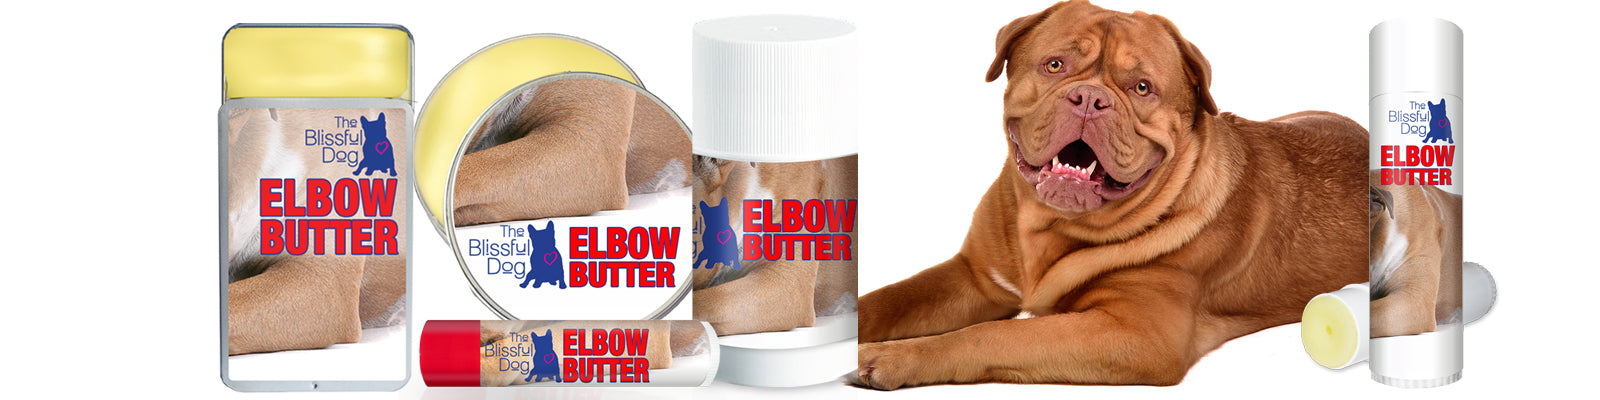 SHOP ELBOW BUTTER FOR DOG